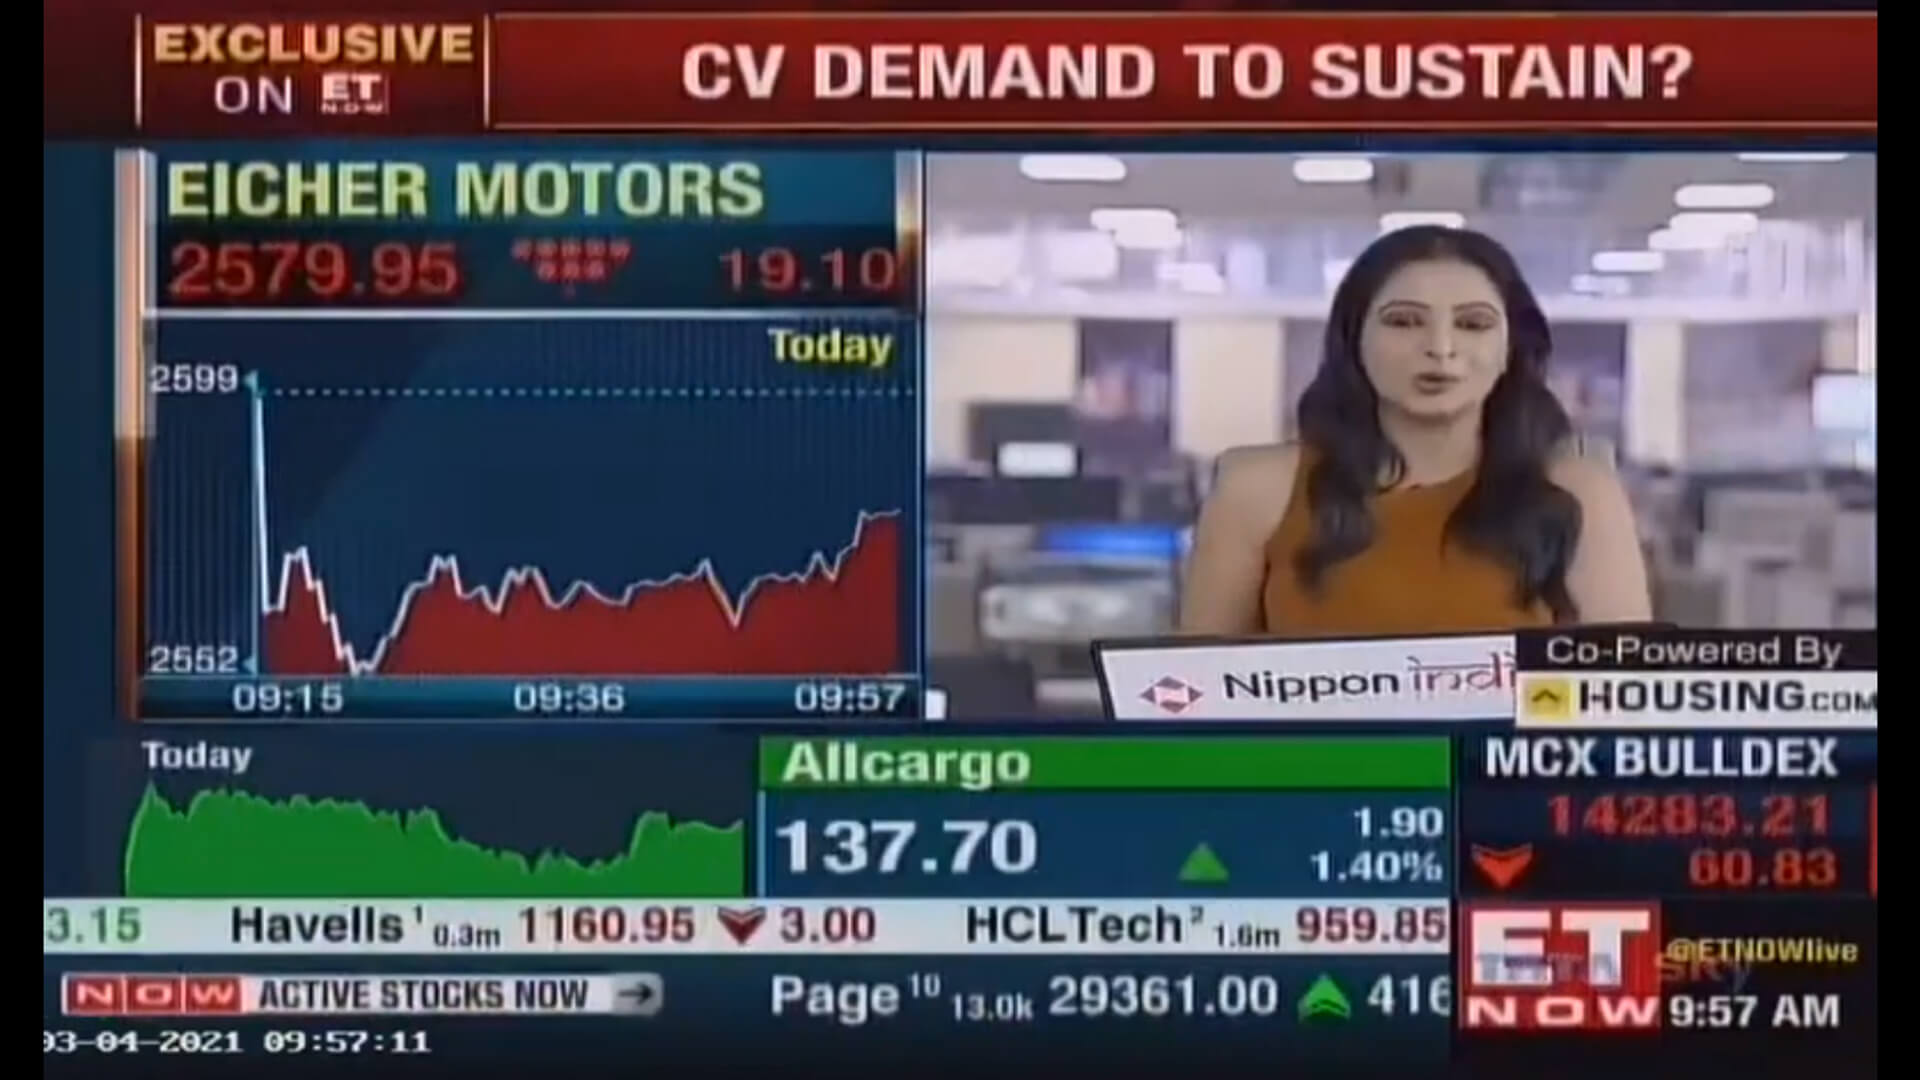 Auto Industry Sales Discussion, Vinod Aggarwal, MD & CEO, VECV